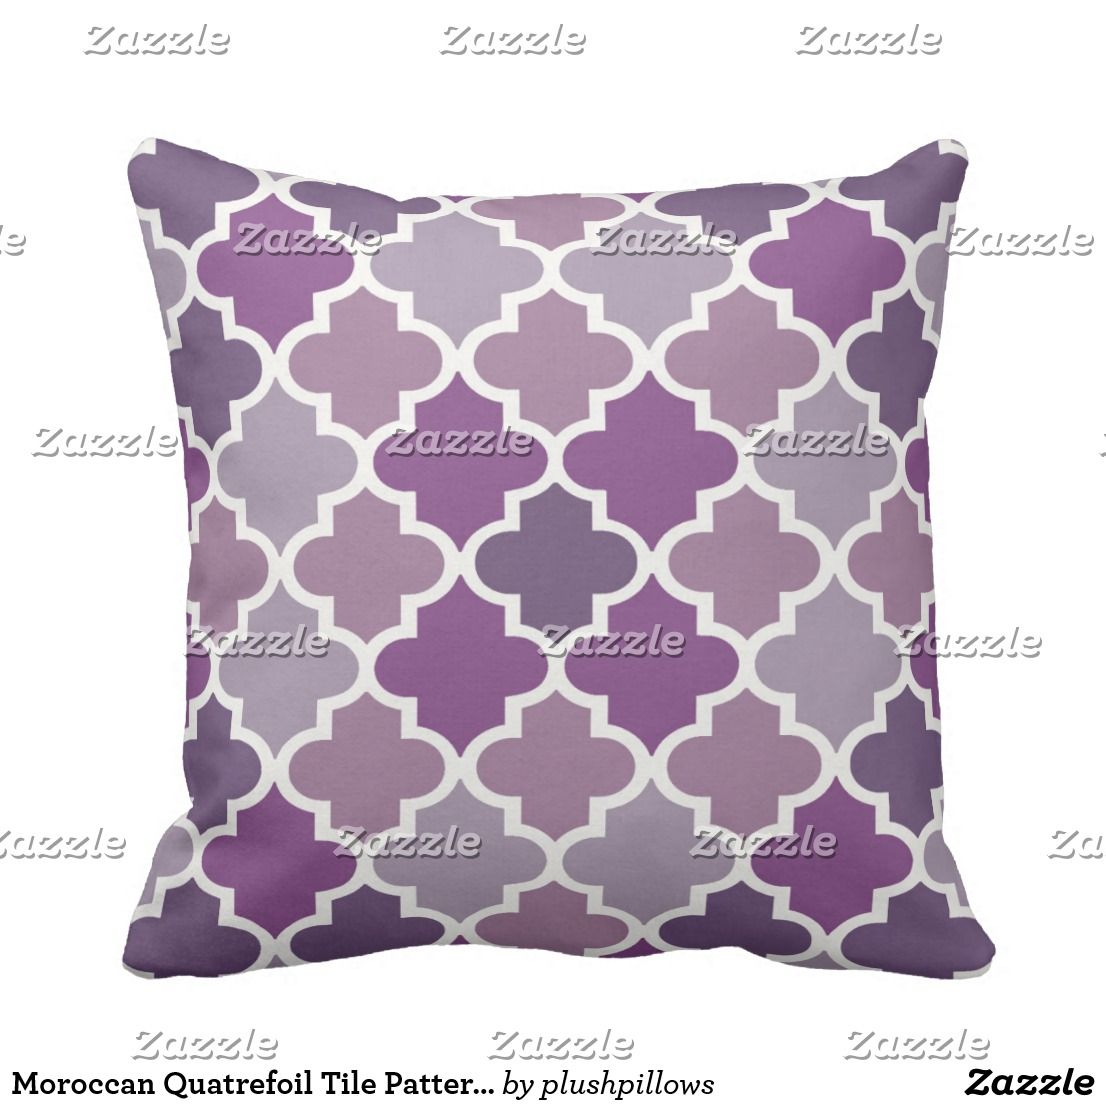 incredible decor home decorative girls girl ideas for purple s bedroom pillows